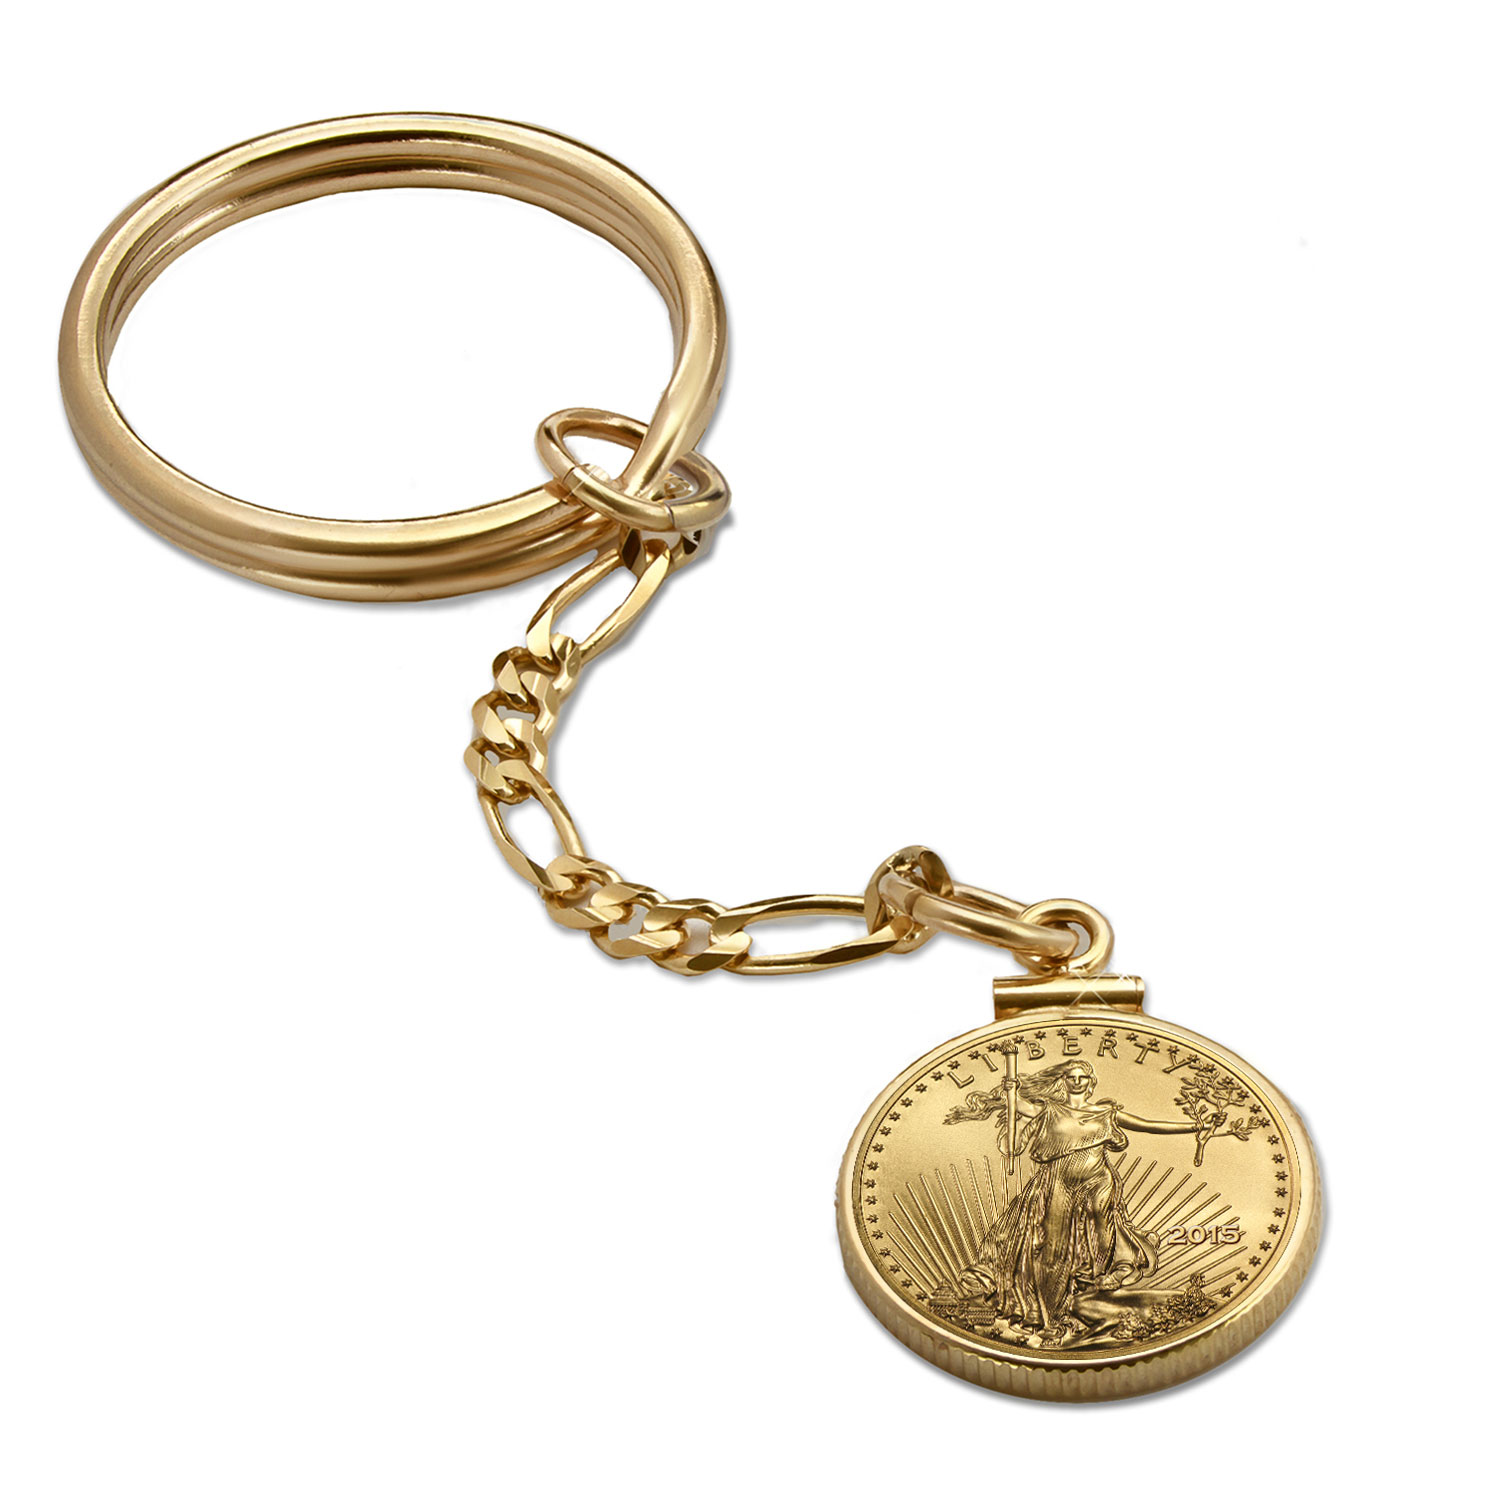 14K Gold Screw-Top Key Ring - 16.5 mm